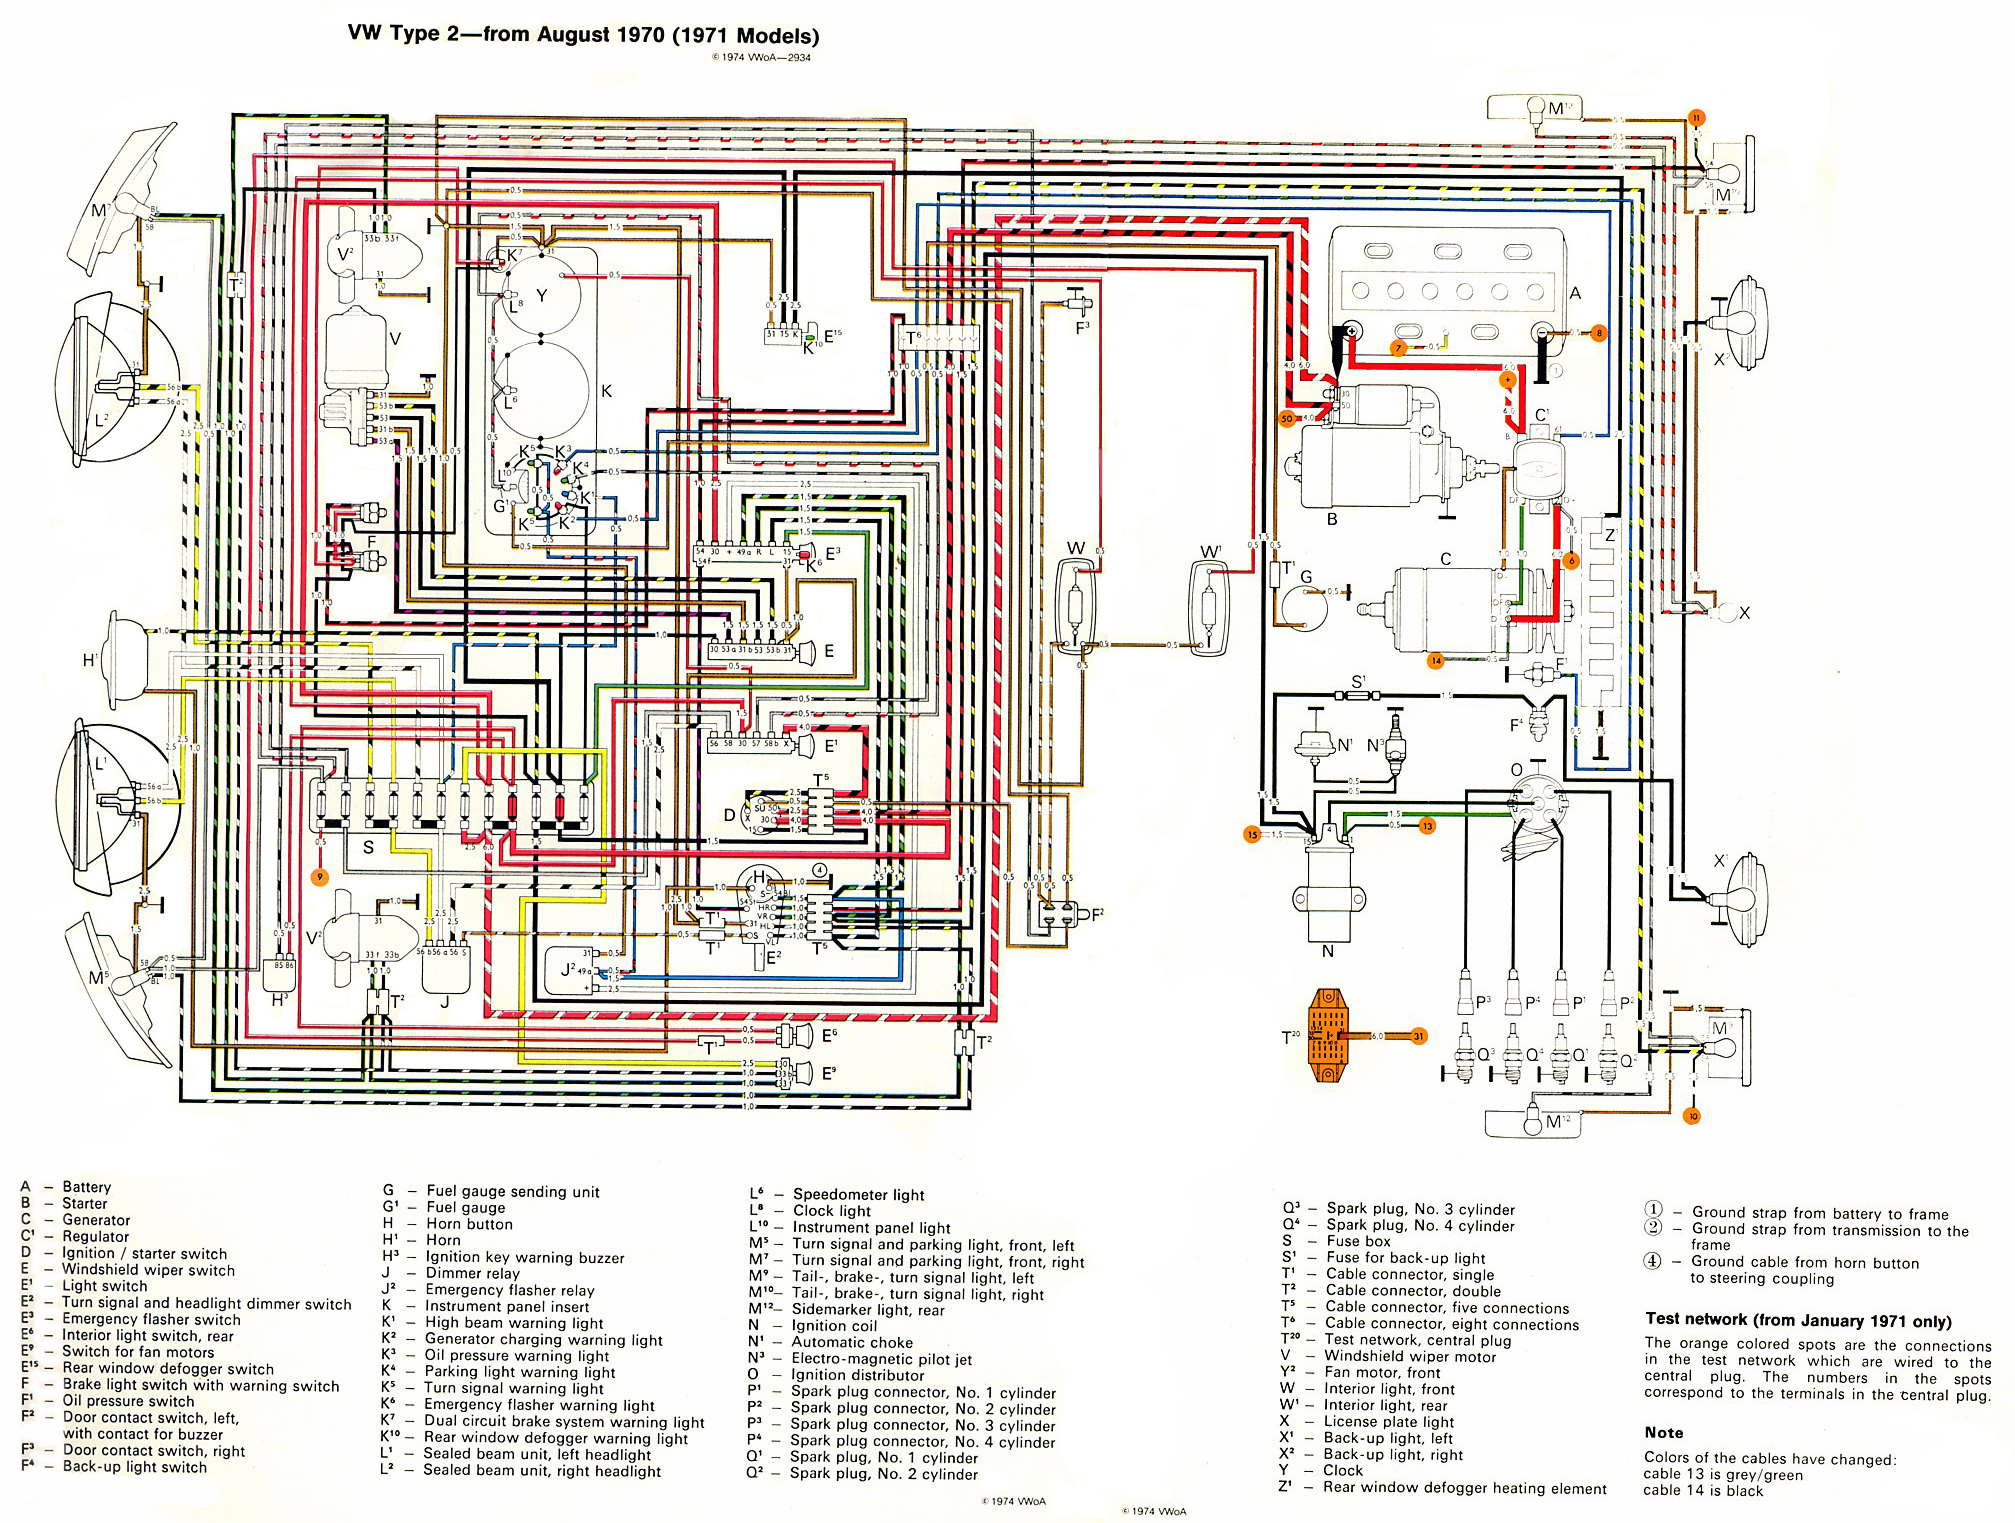 baybus_71_fixed vw t4 horn wiring diagram efcaviation com vw t4 fuse box wiring diagram at virtualis.co